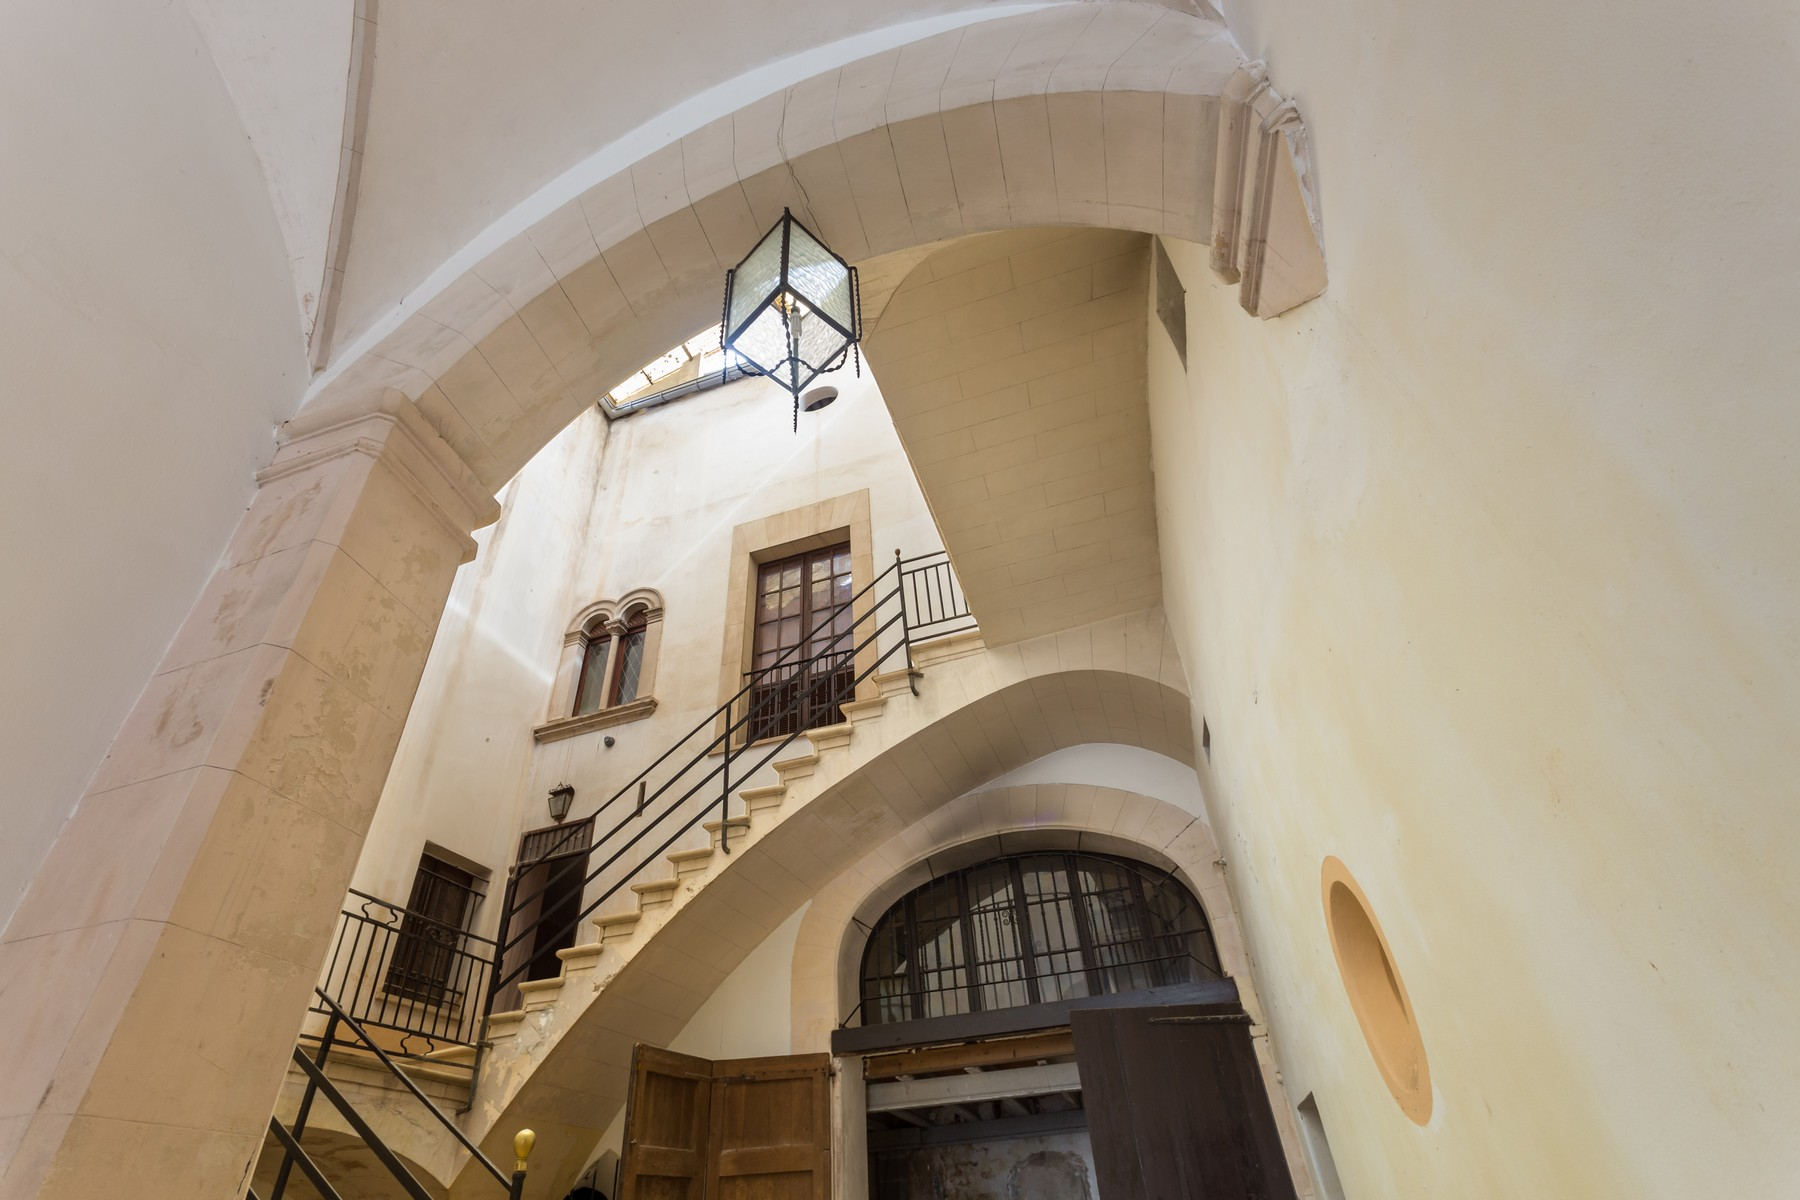 Single Family Home for Sale at Captivating palace in Palma's Old Town Palma De Mallorca, Balearic Islands 07001 Spain